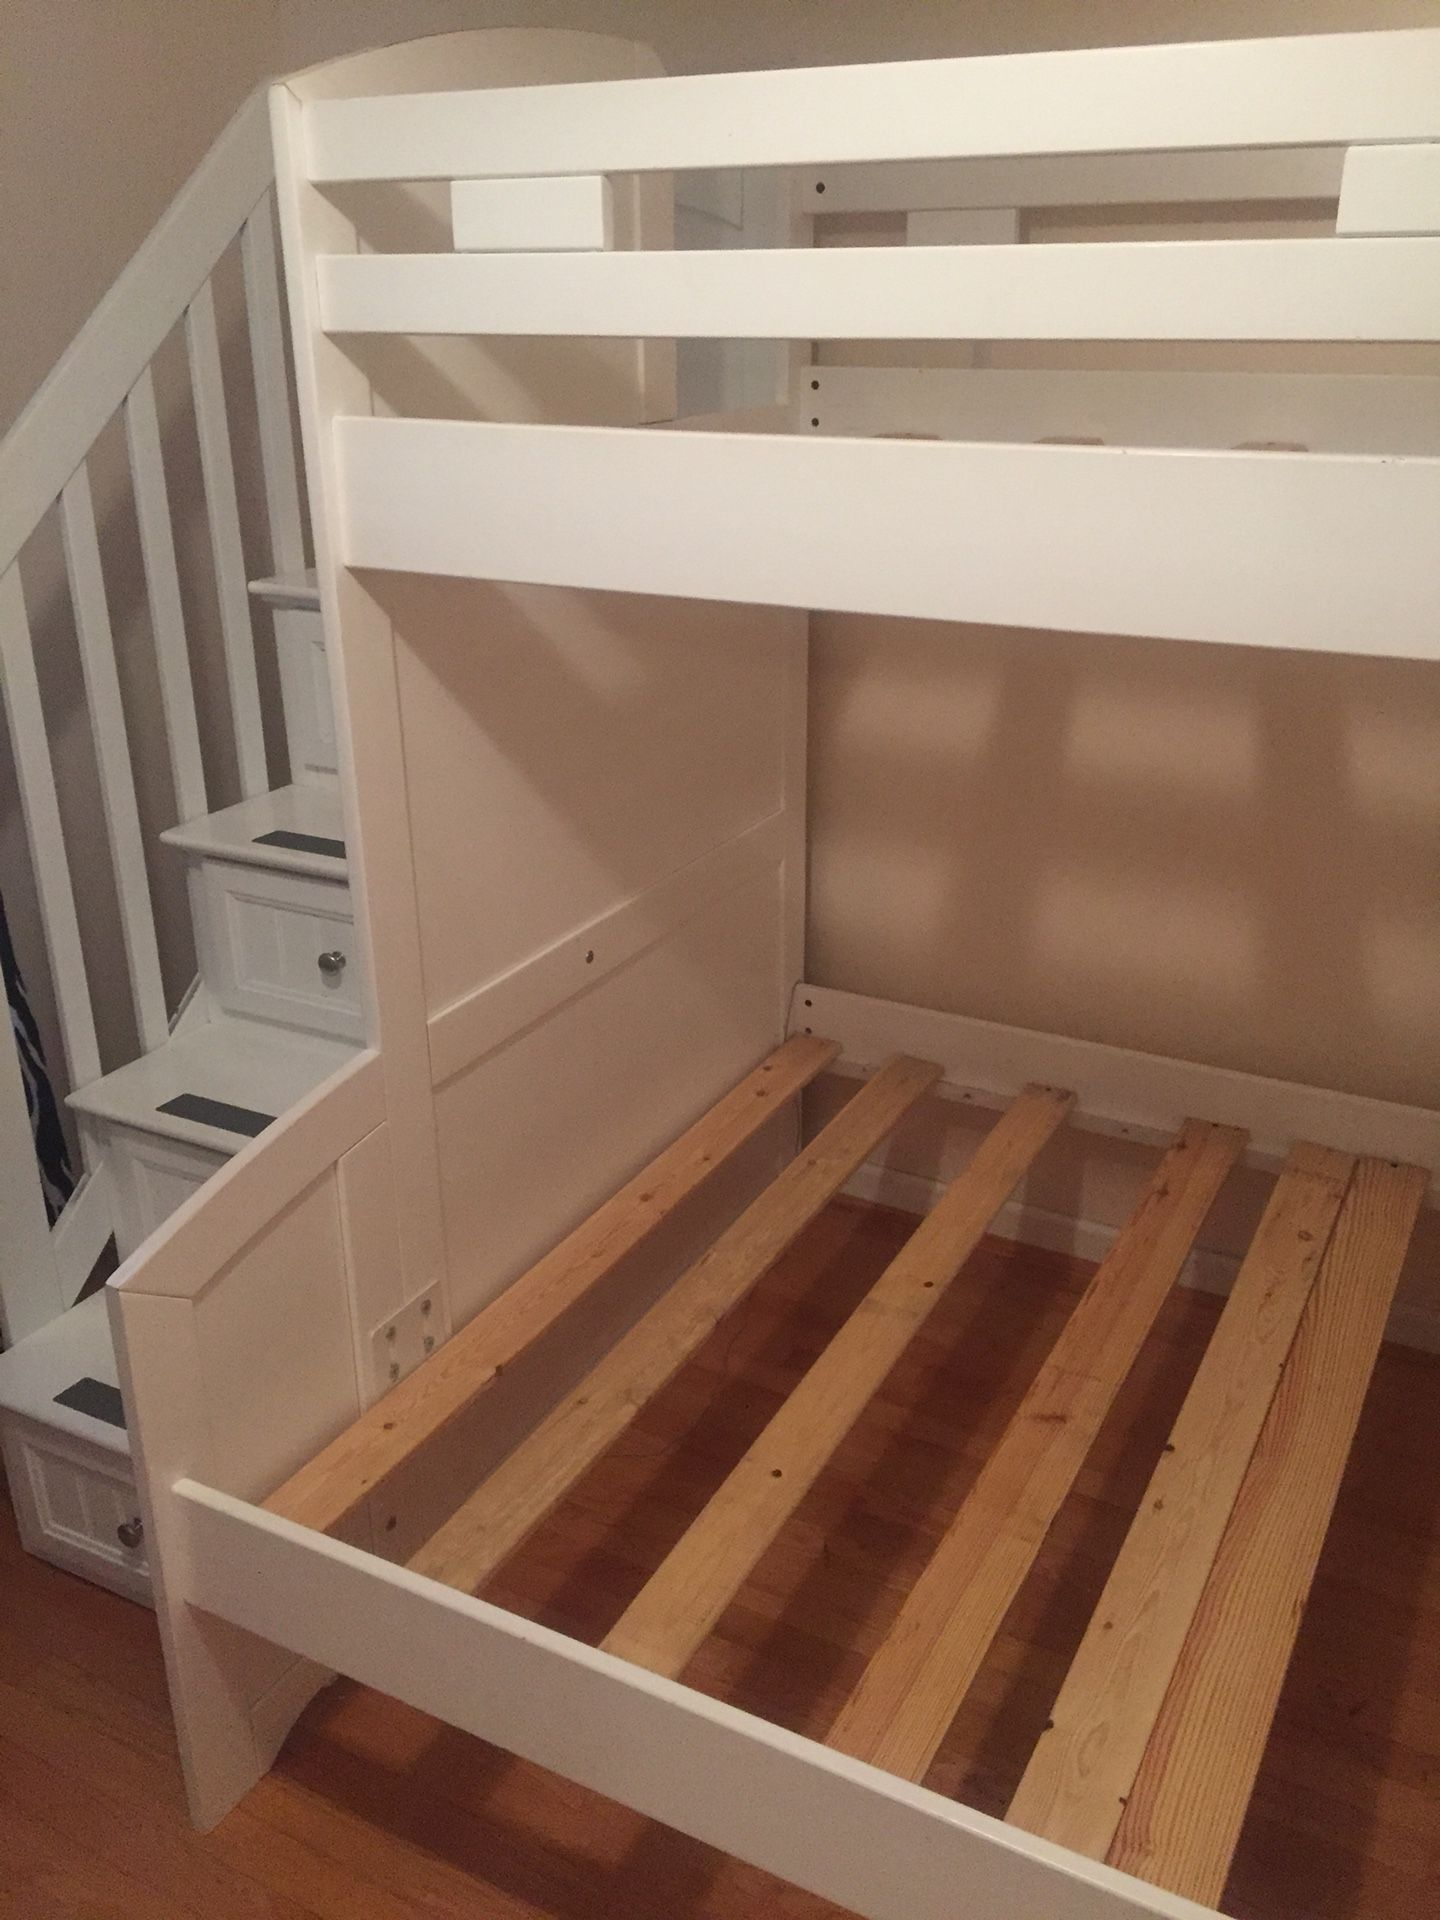 Rooms To Go Canyon Furniture Company Bunk Bed Twin Over Full For Sale In Woodstock Ga Offerup